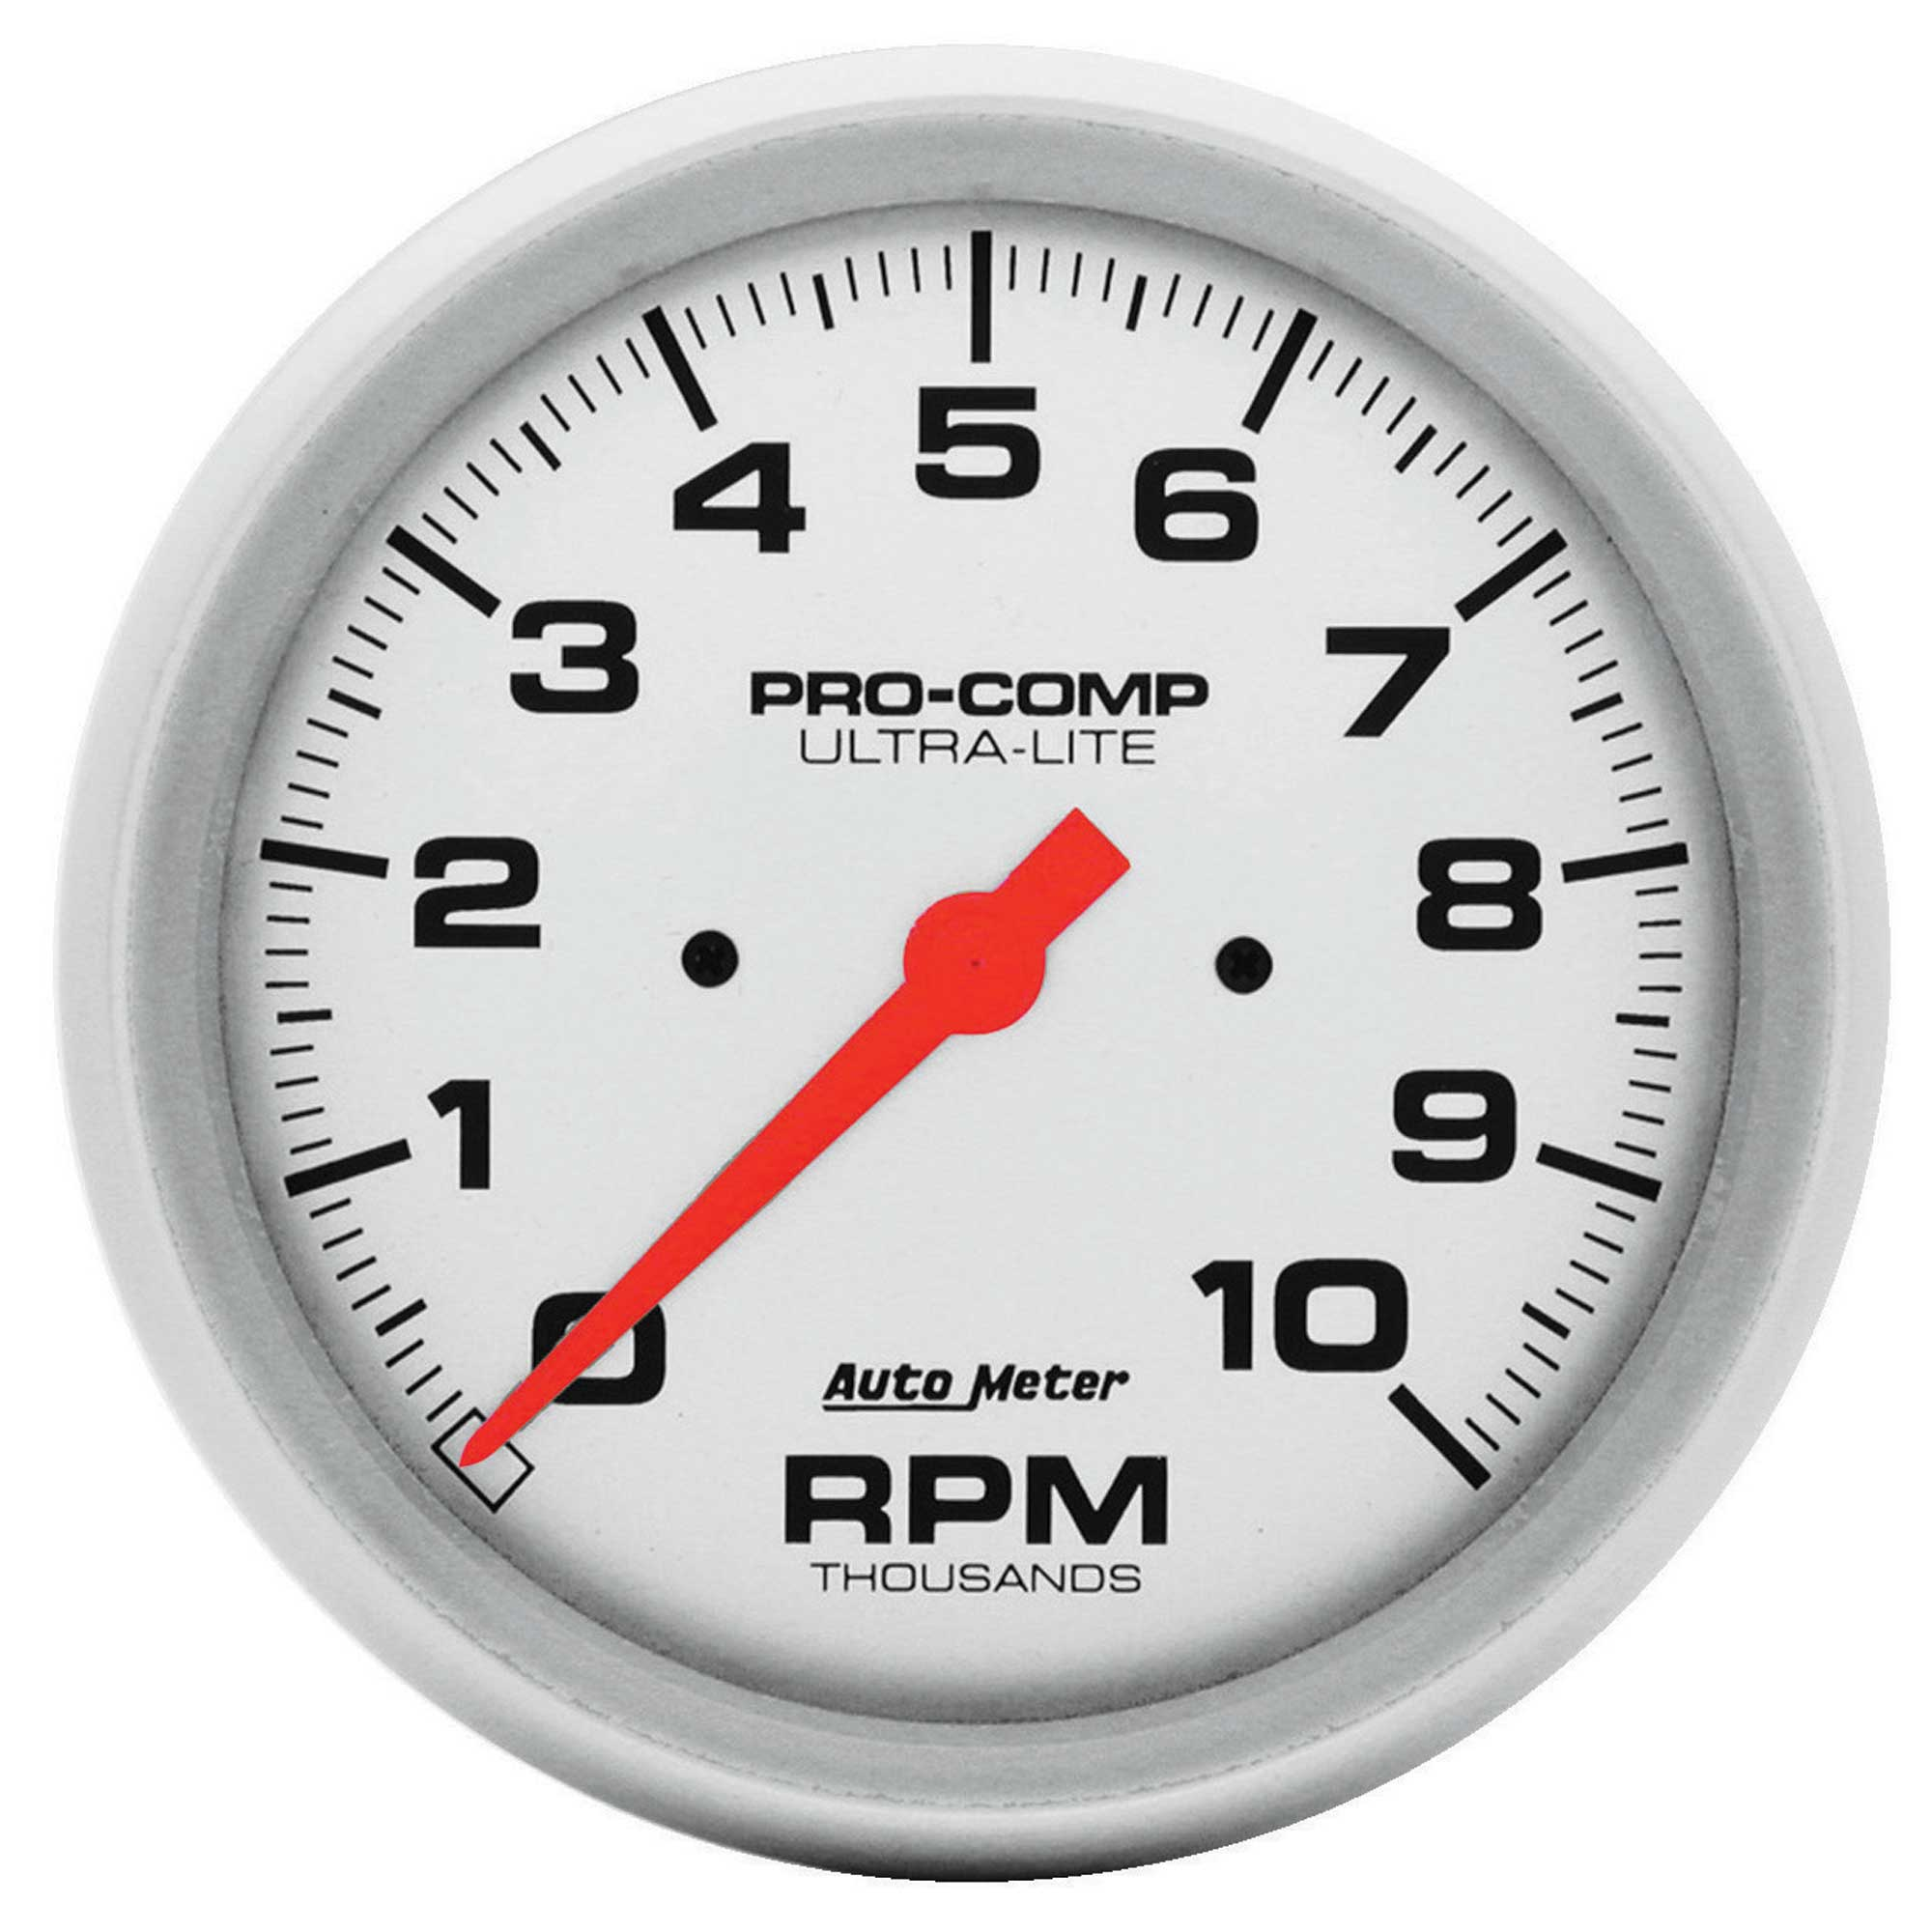 hight resolution of details about auto meter 5 inch 127mm dash pro comp tachometer 0 10 000rpm range